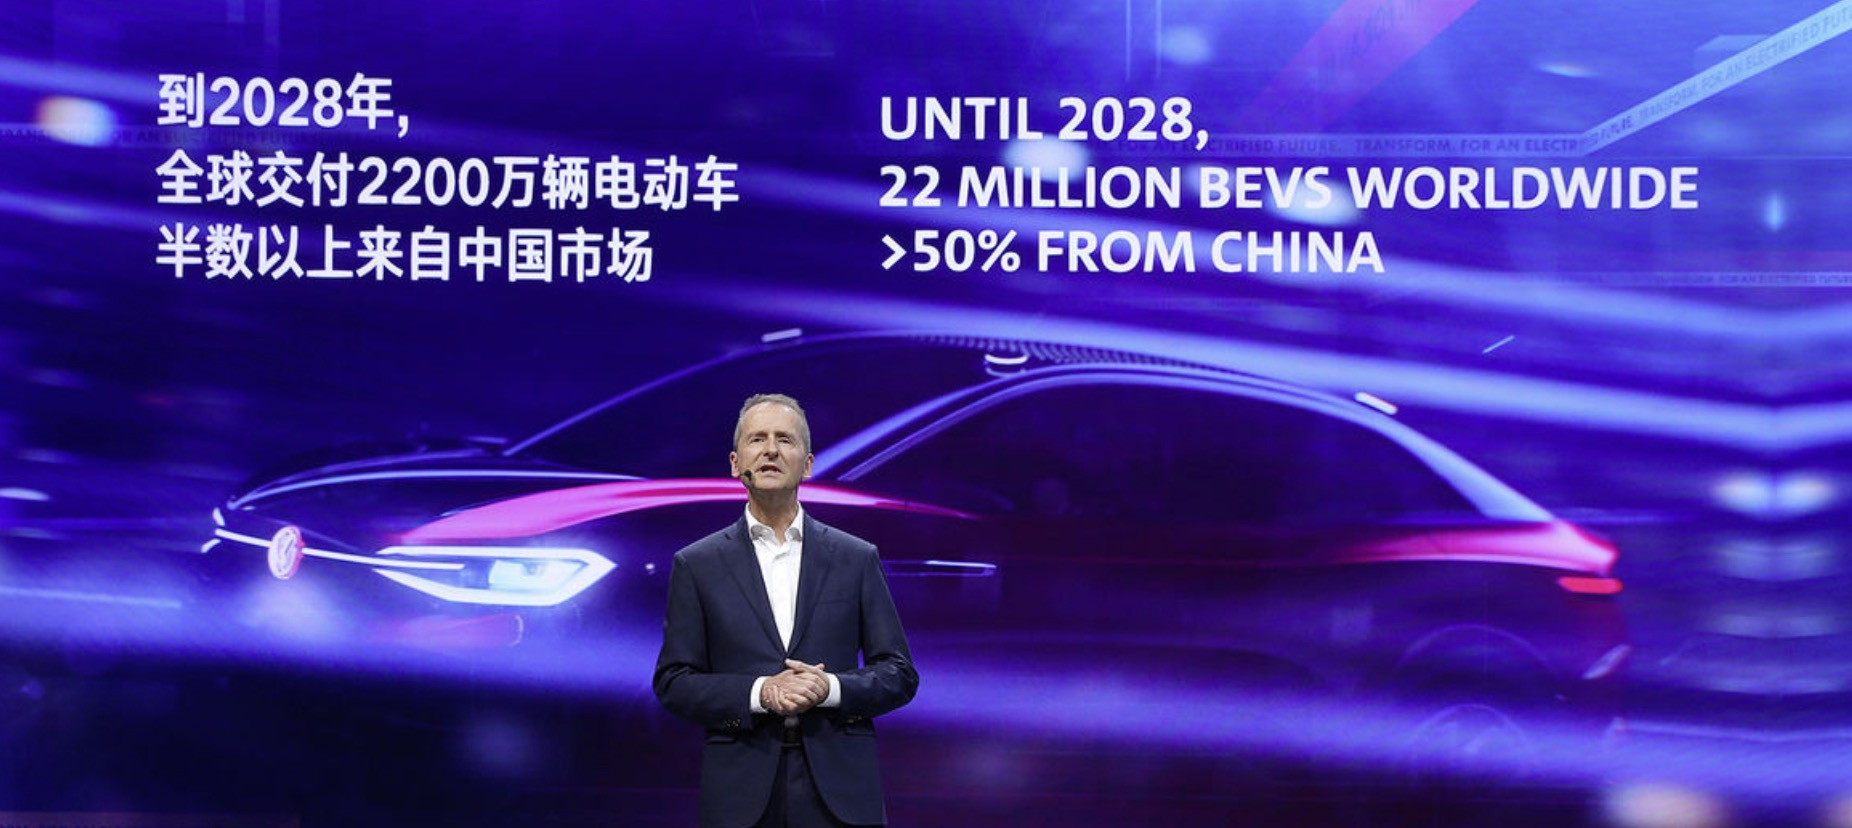 Volkswagen Group aims to produce 11.6 million electric vehicles in China by 2028